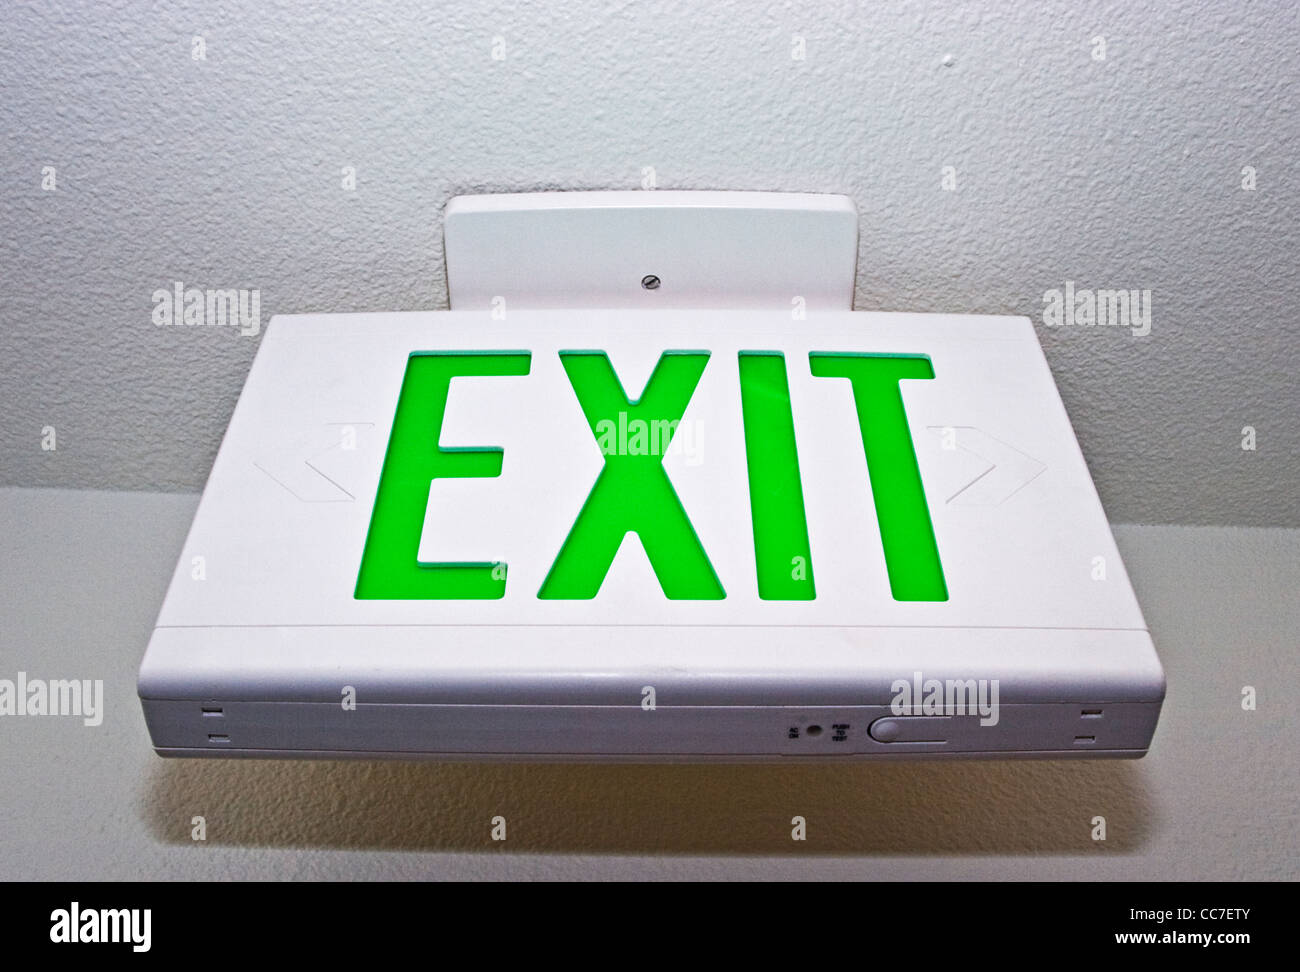 exit sign mounted on ceiling in hallway - Stock Image